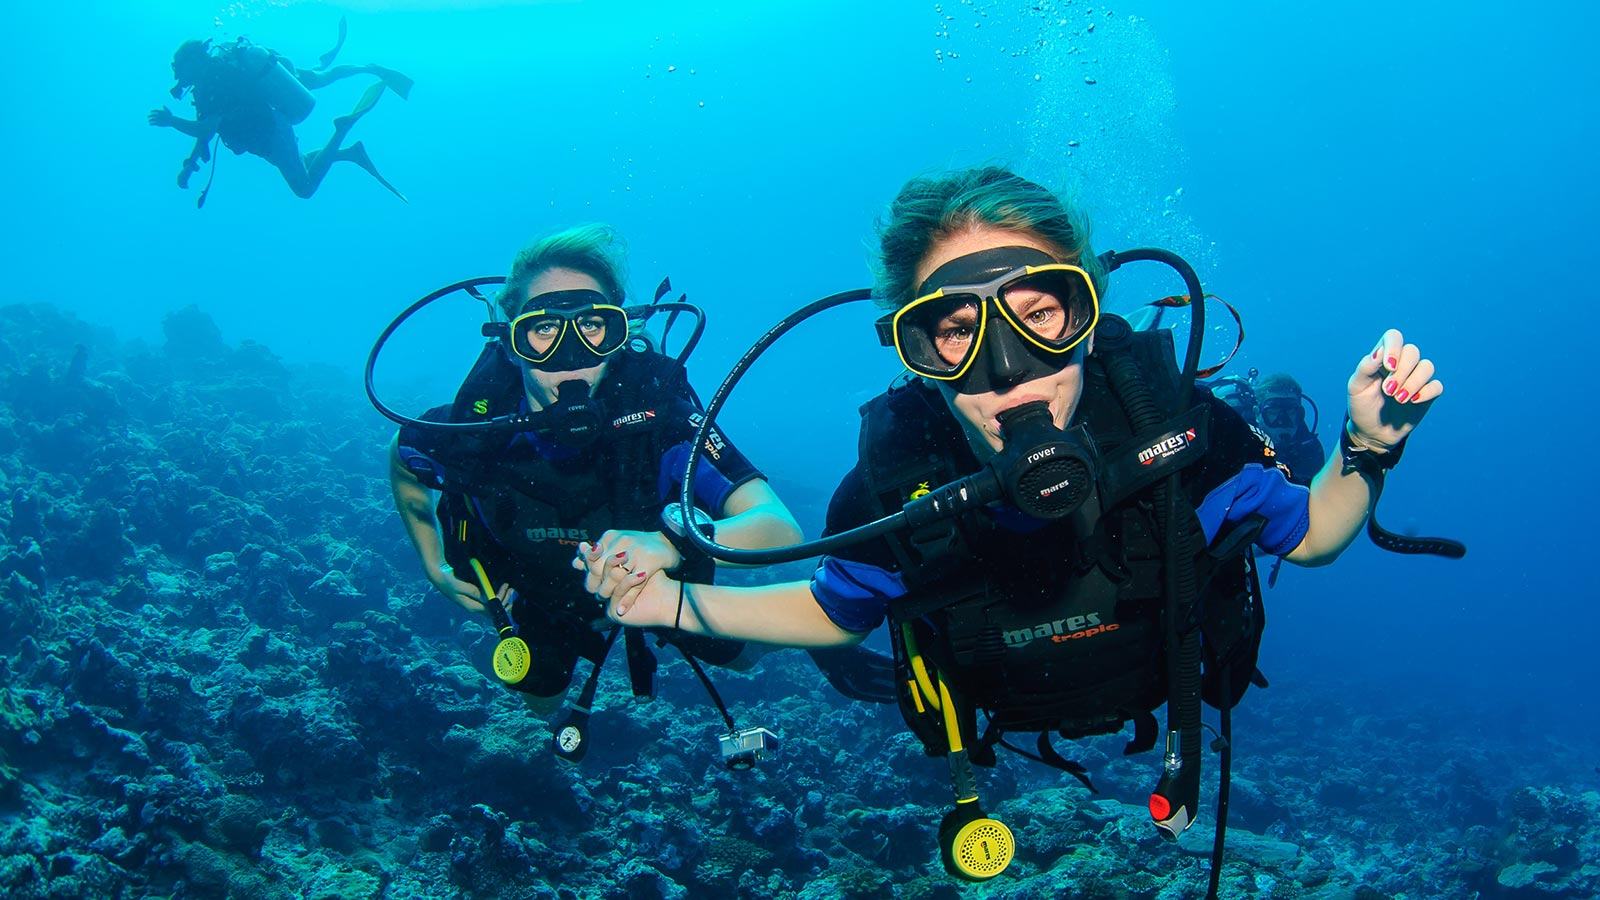 Scuba Diving - Bali Scuba Diving International Package - YOEXPLORE.co.id